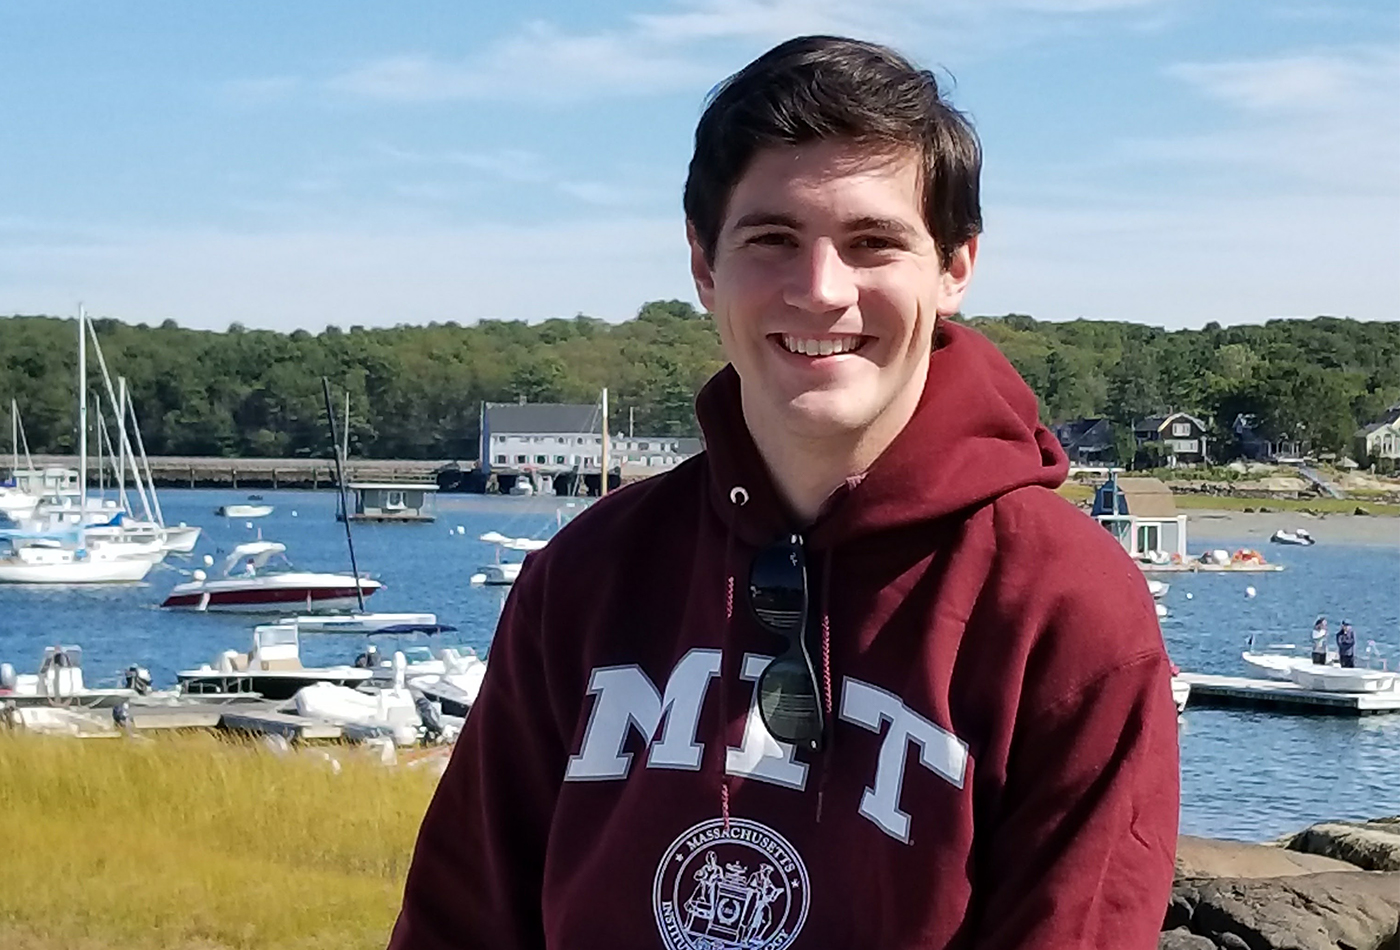 A male graduate student in an MIT sweatshirt stands in front of a coastal vista.